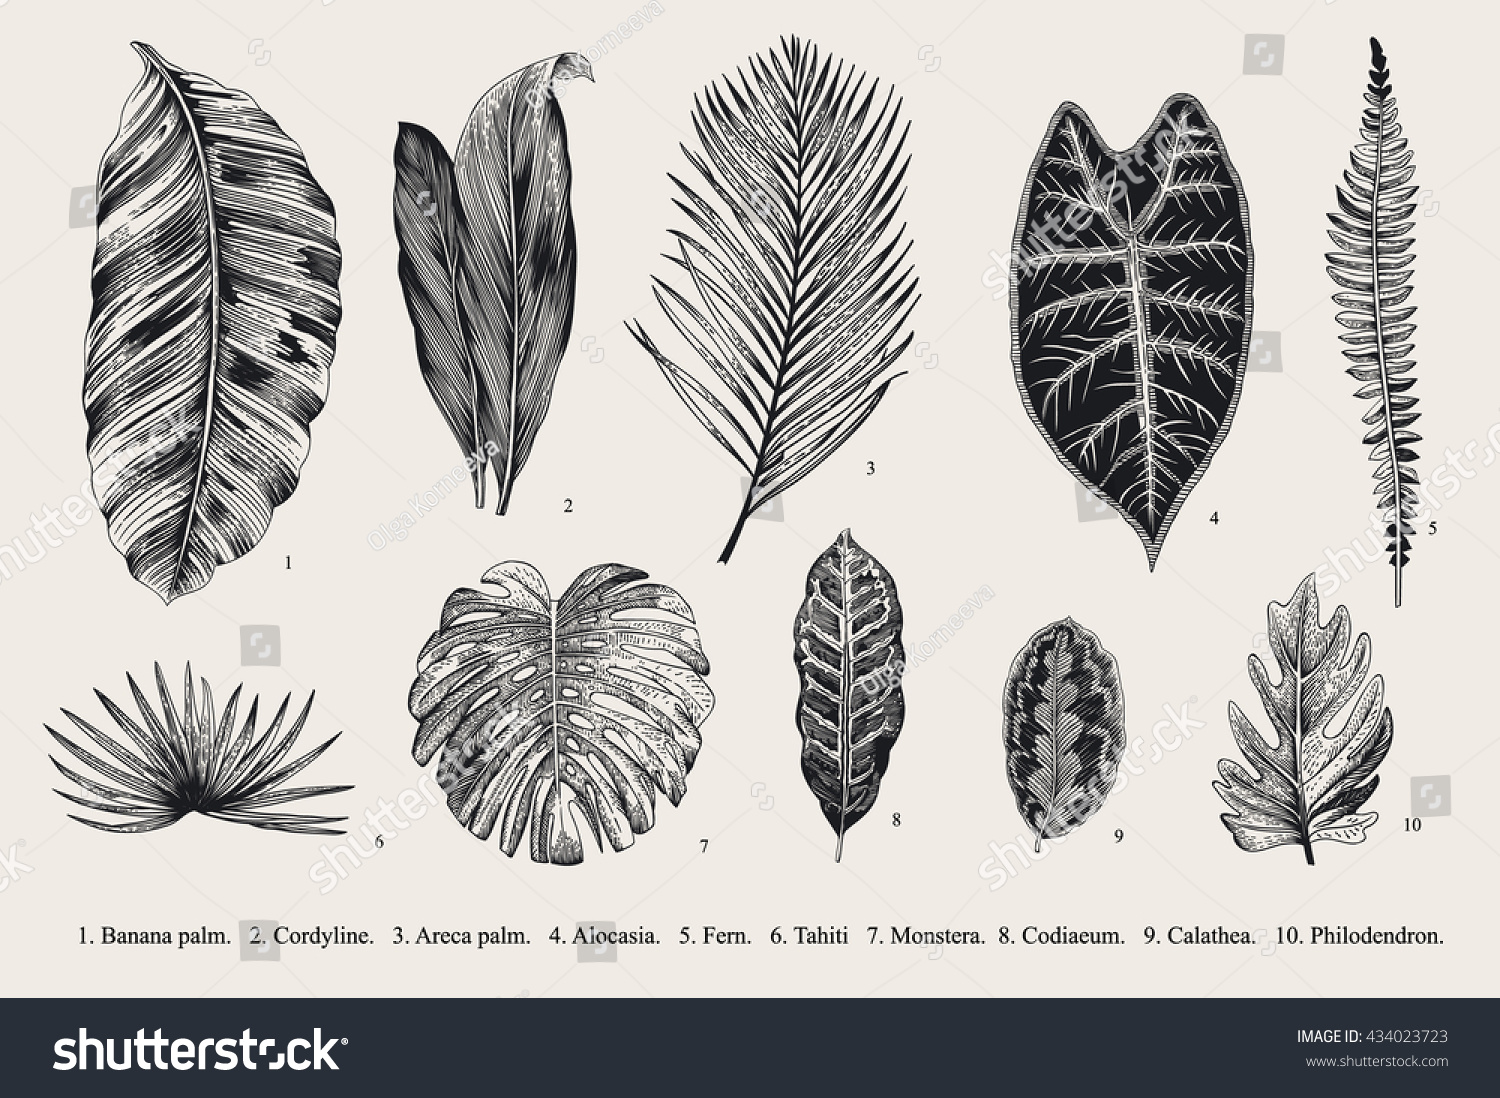 Botanical illustration black and white - photo#19